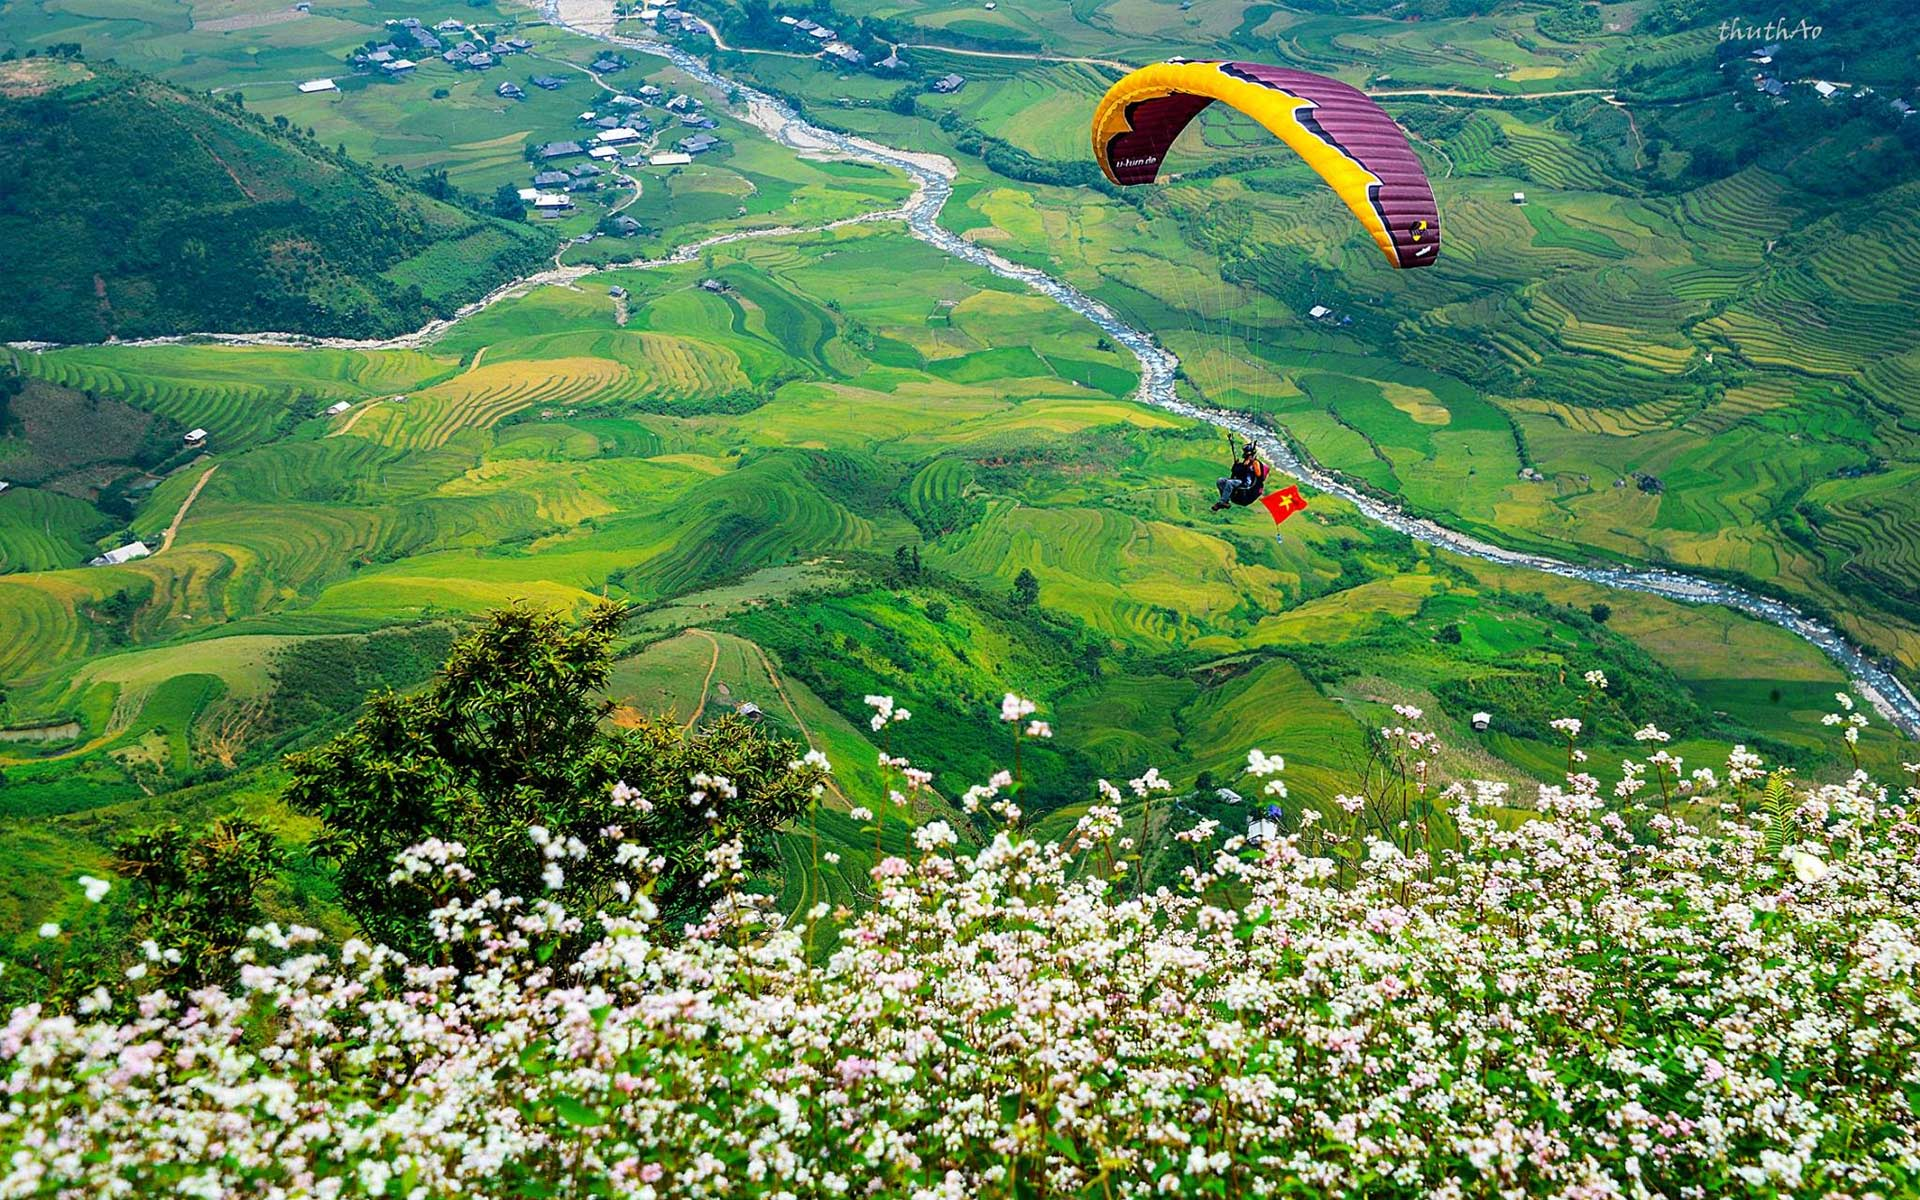 Paragliding on Mu Cang Chai in the harvest season